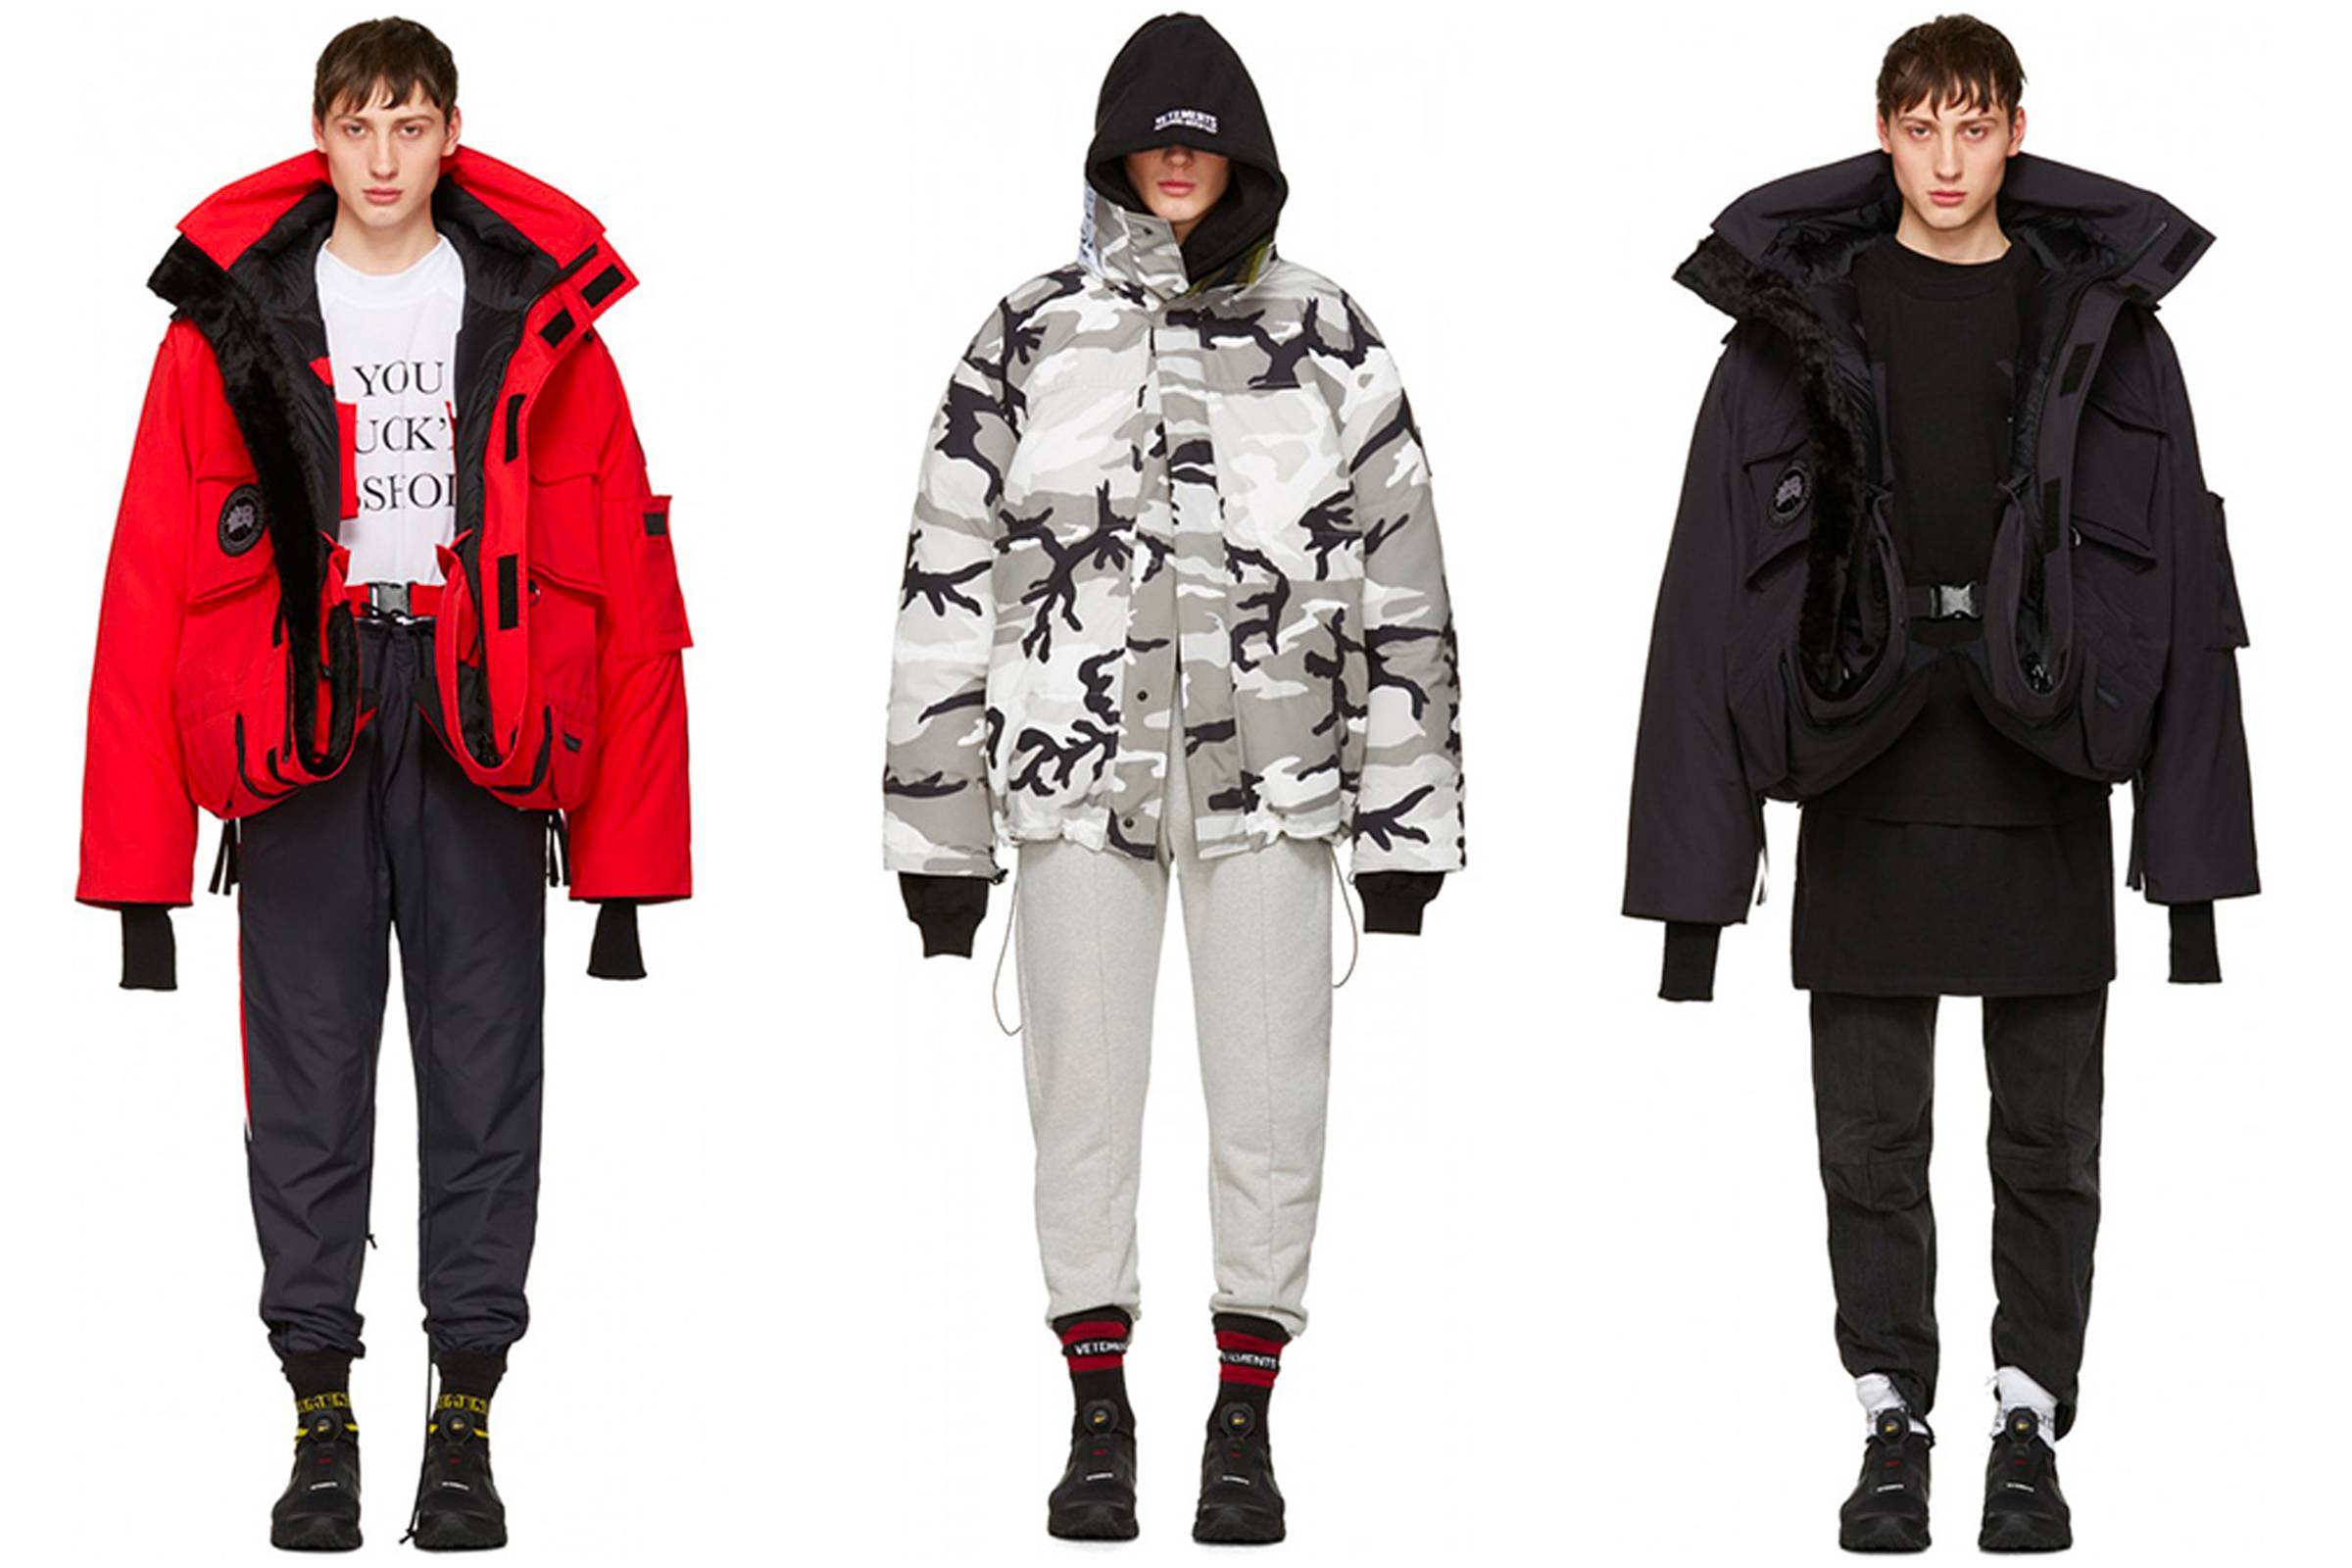 Canada Goose collaboration outerwear from Vetements' Spring/Summer 2017 collection